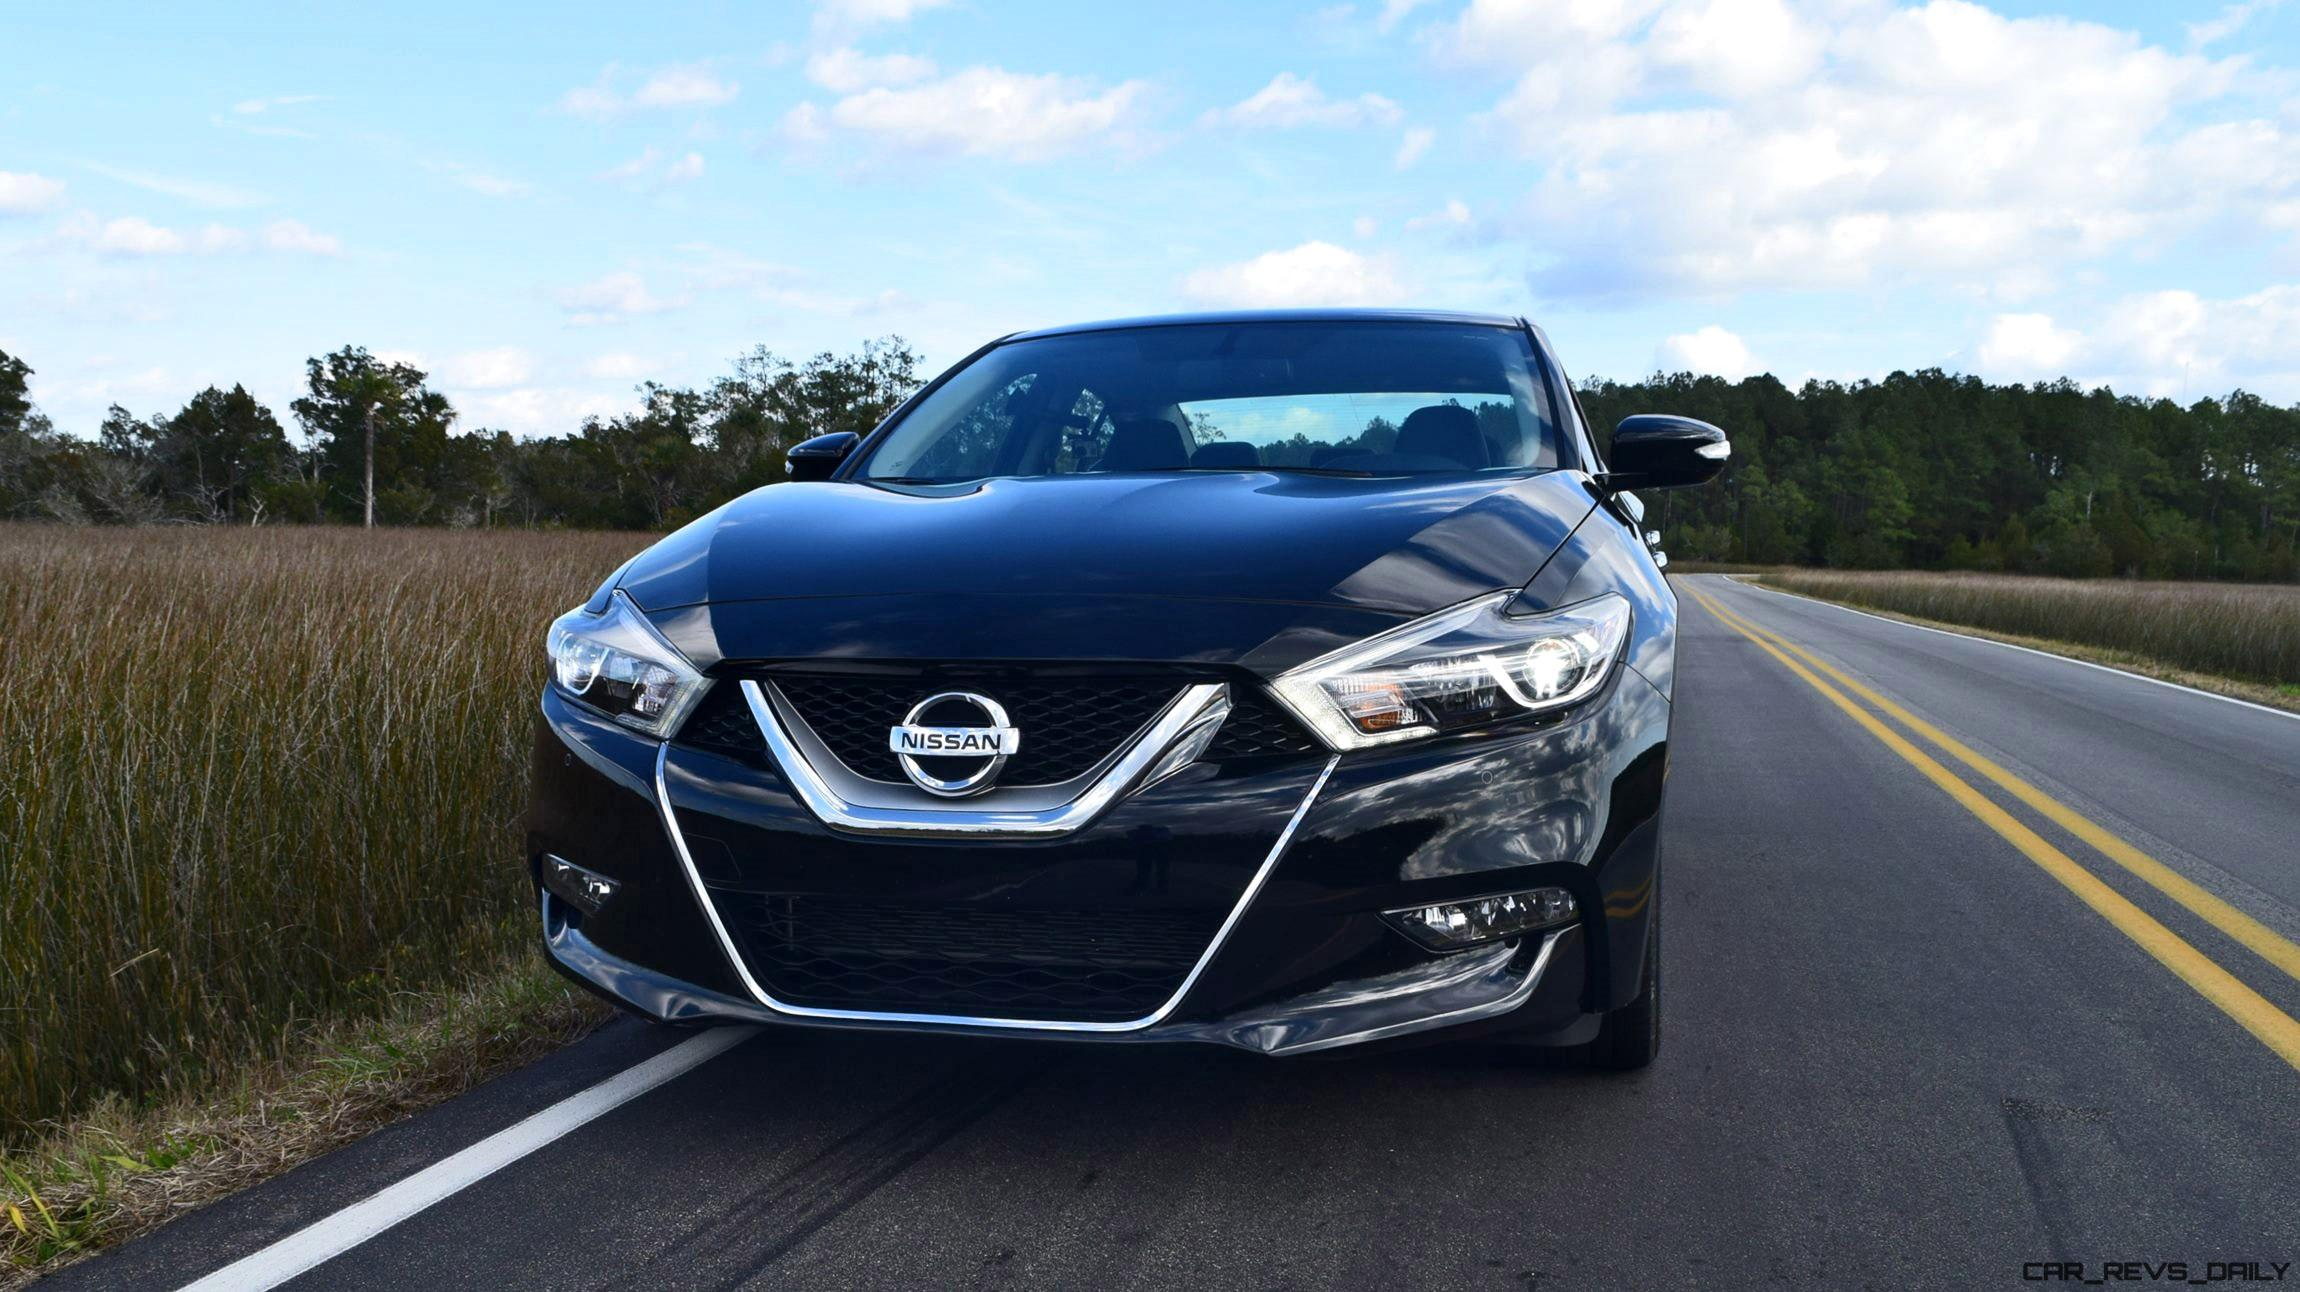 Nissan Maxima Led L Shape Drl also Prevent Remove Condensation Inside Headlights X moreover Nissan Maxima further Z Photos Profile Drivers moreover S P I W. on nissan maxima headlamps